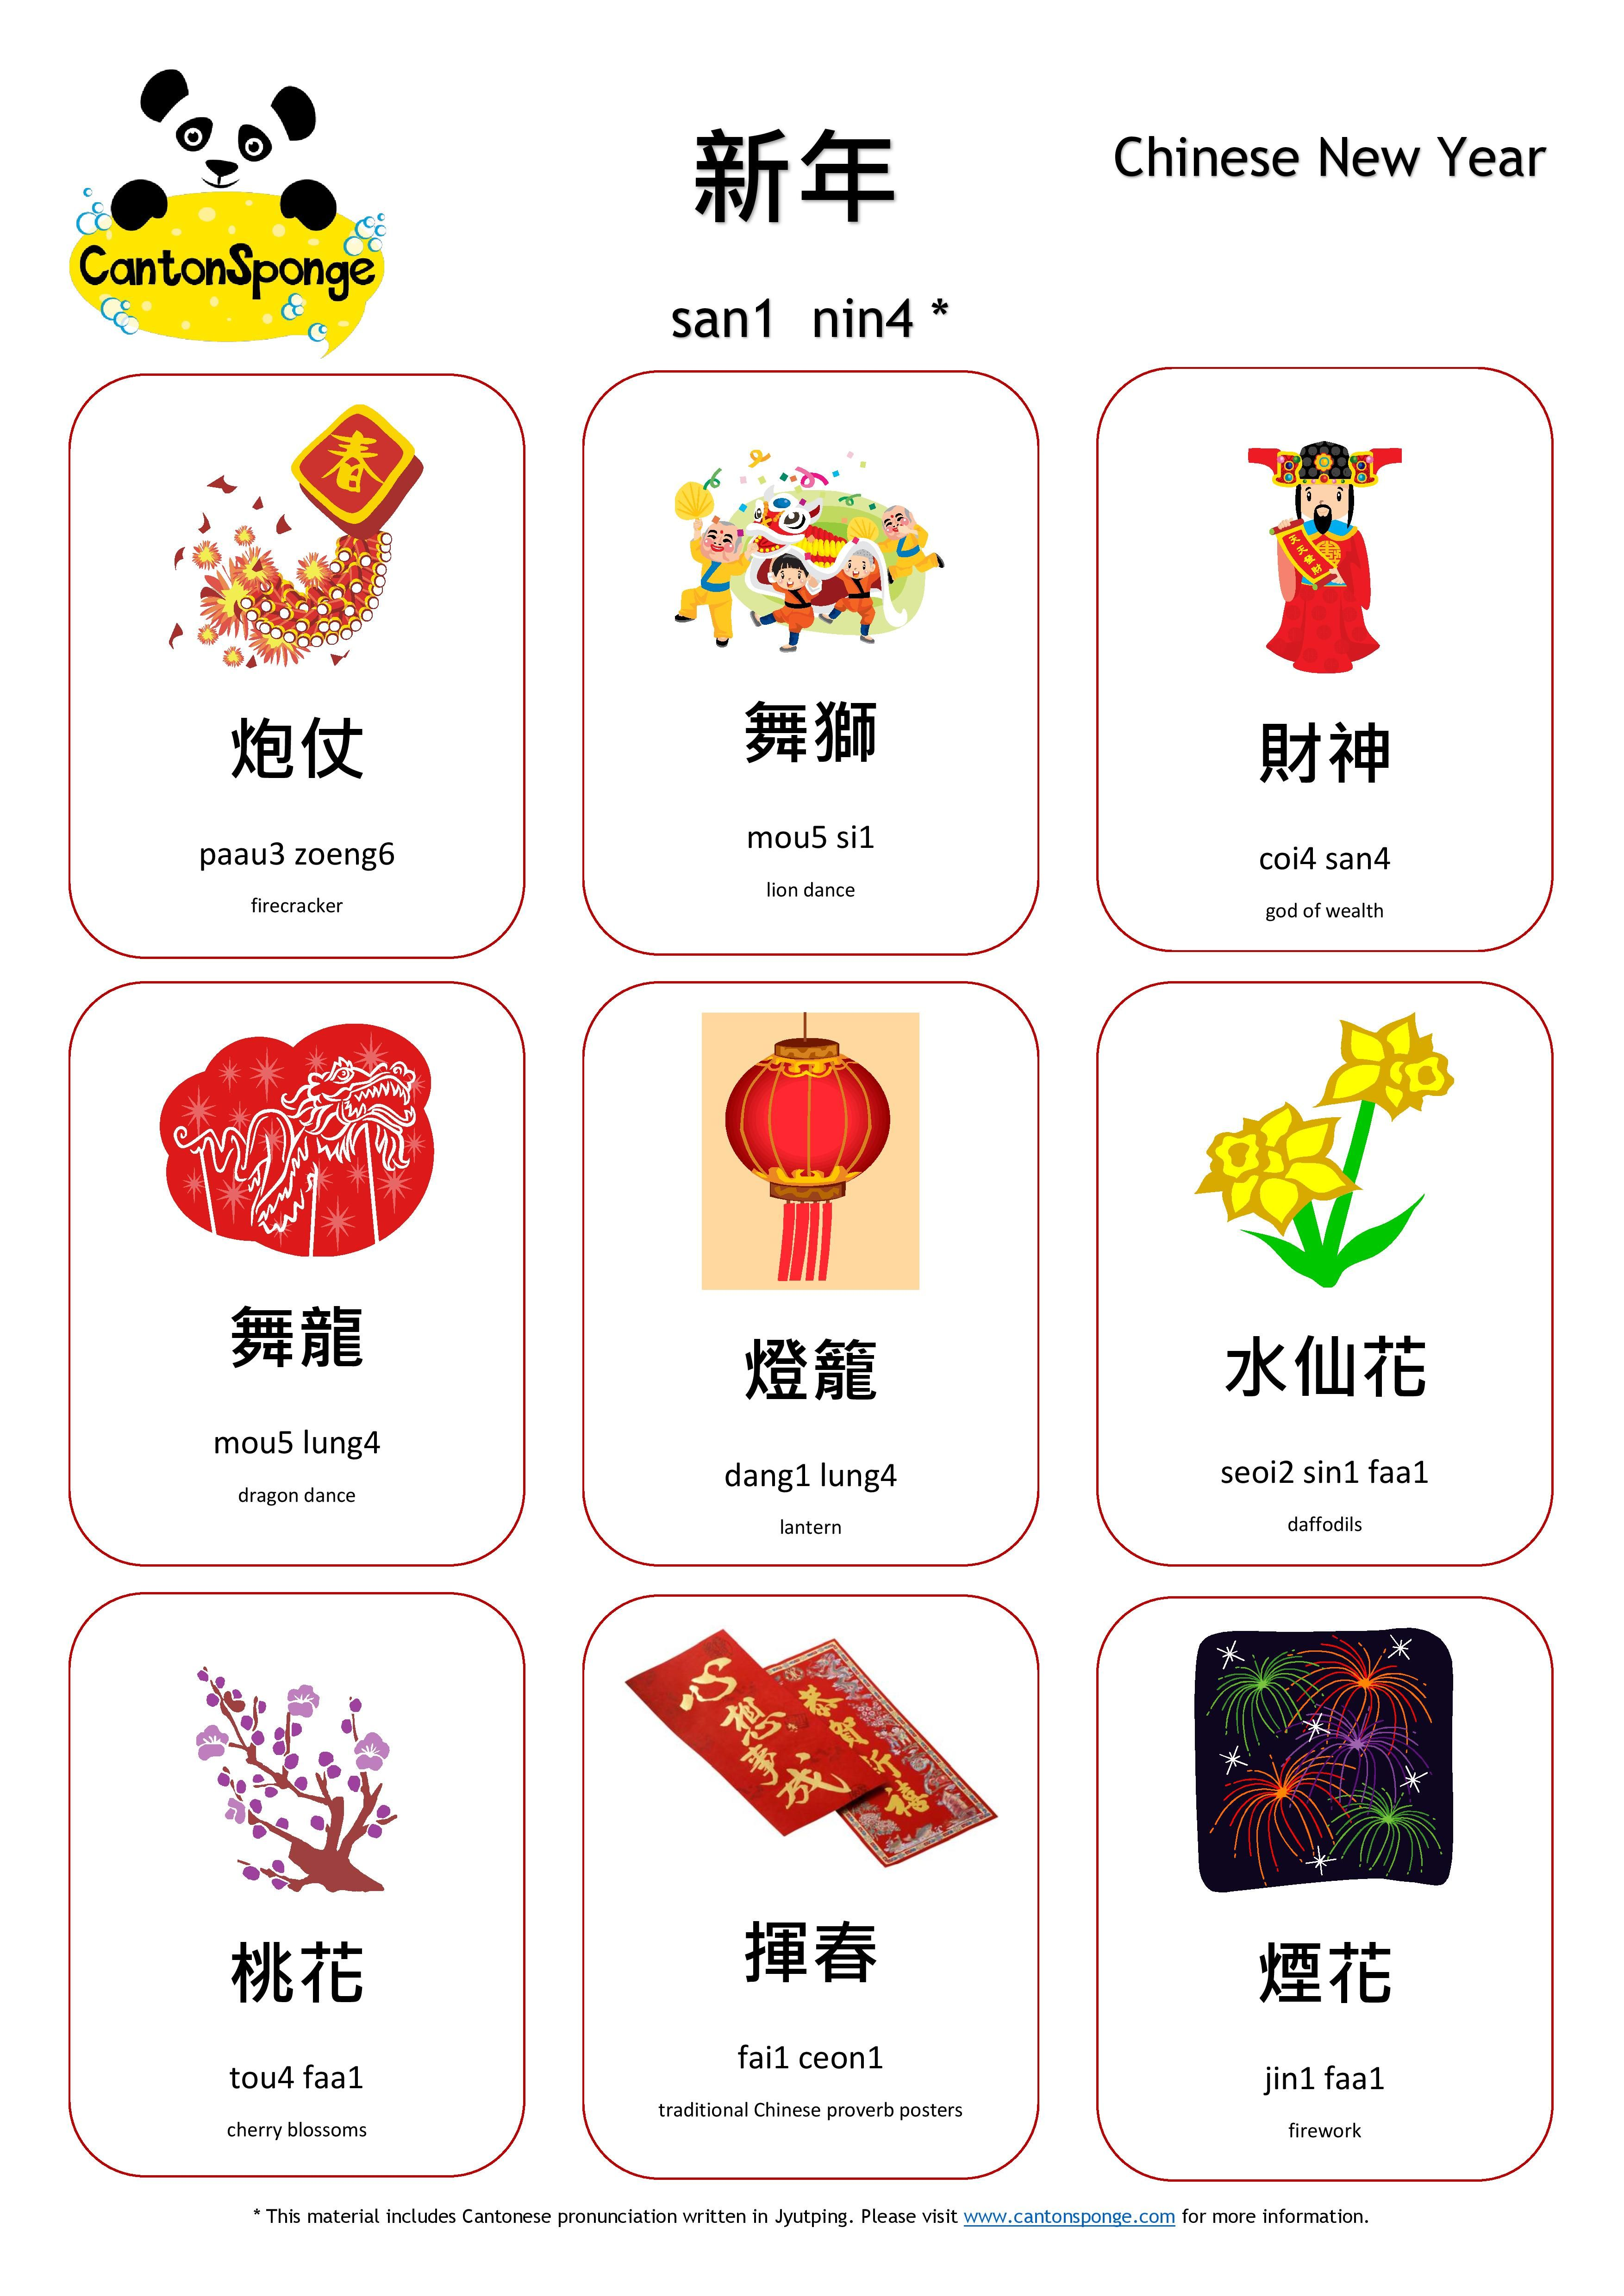 Chinese New Year Cny Cantonese Vocabulary Poster Created